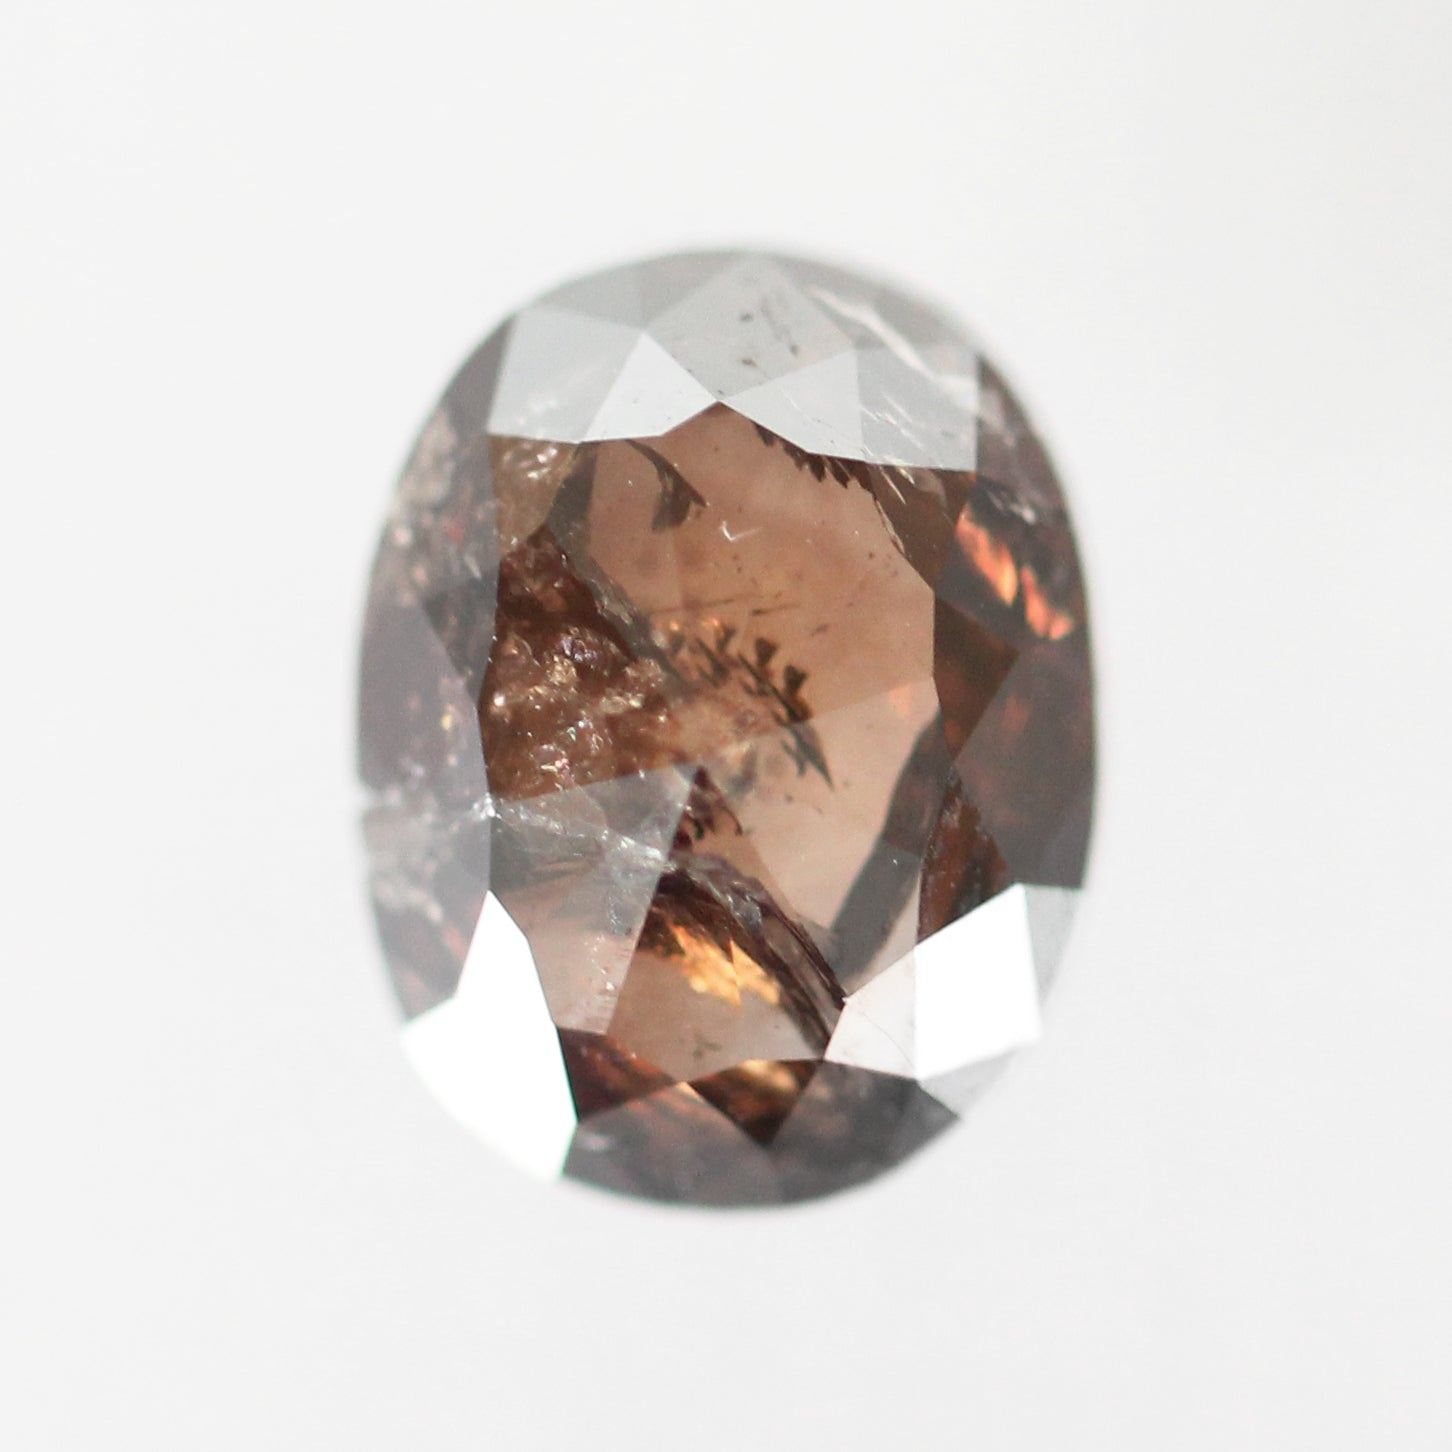 1.86ct Rose Cut Oval Celestial Diamond® for Custom Work - Inventory Code ORD186 - Celestial Diamonds ® by Midwinter Co.